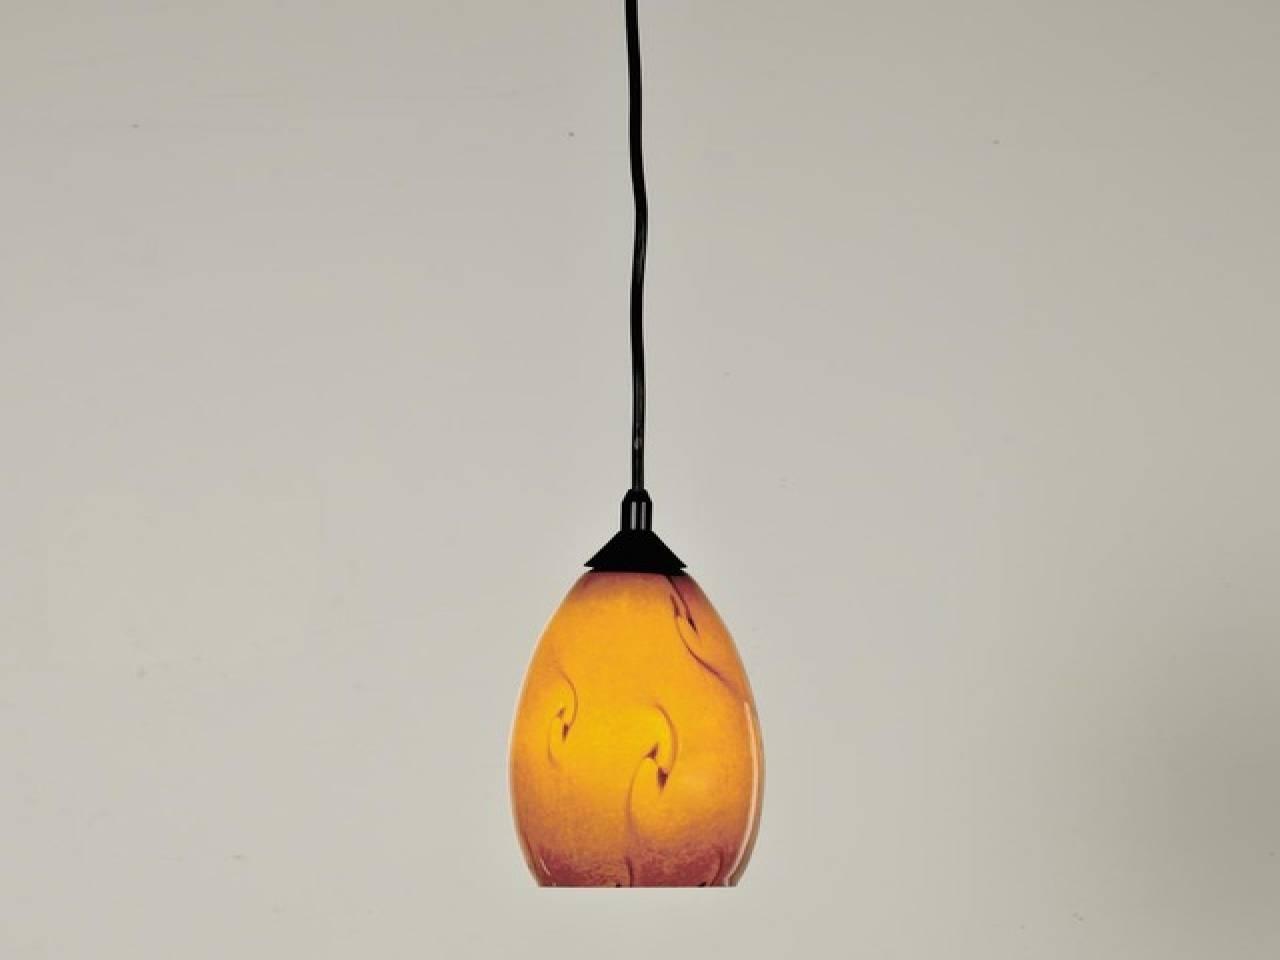 Lovely Murano Glass Pendant Light 59 In Clear Glass Mini Pendant intended for Murano Glass Lighting Pendants (Image 4 of 15)